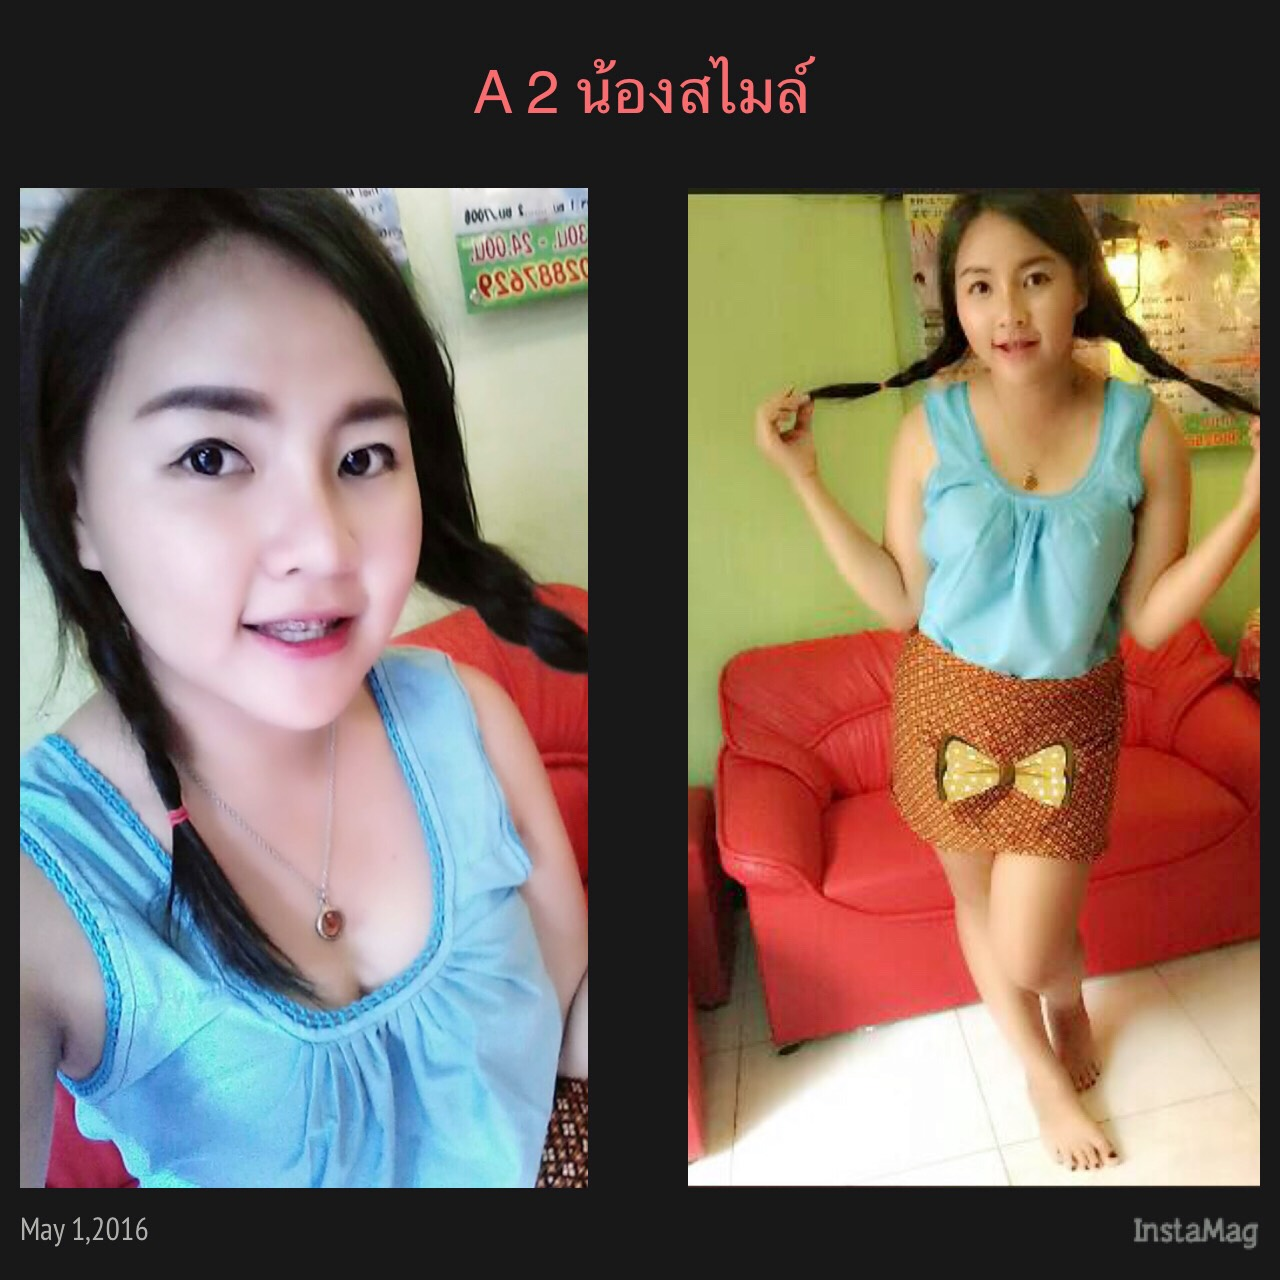 thai massage outcall female sex